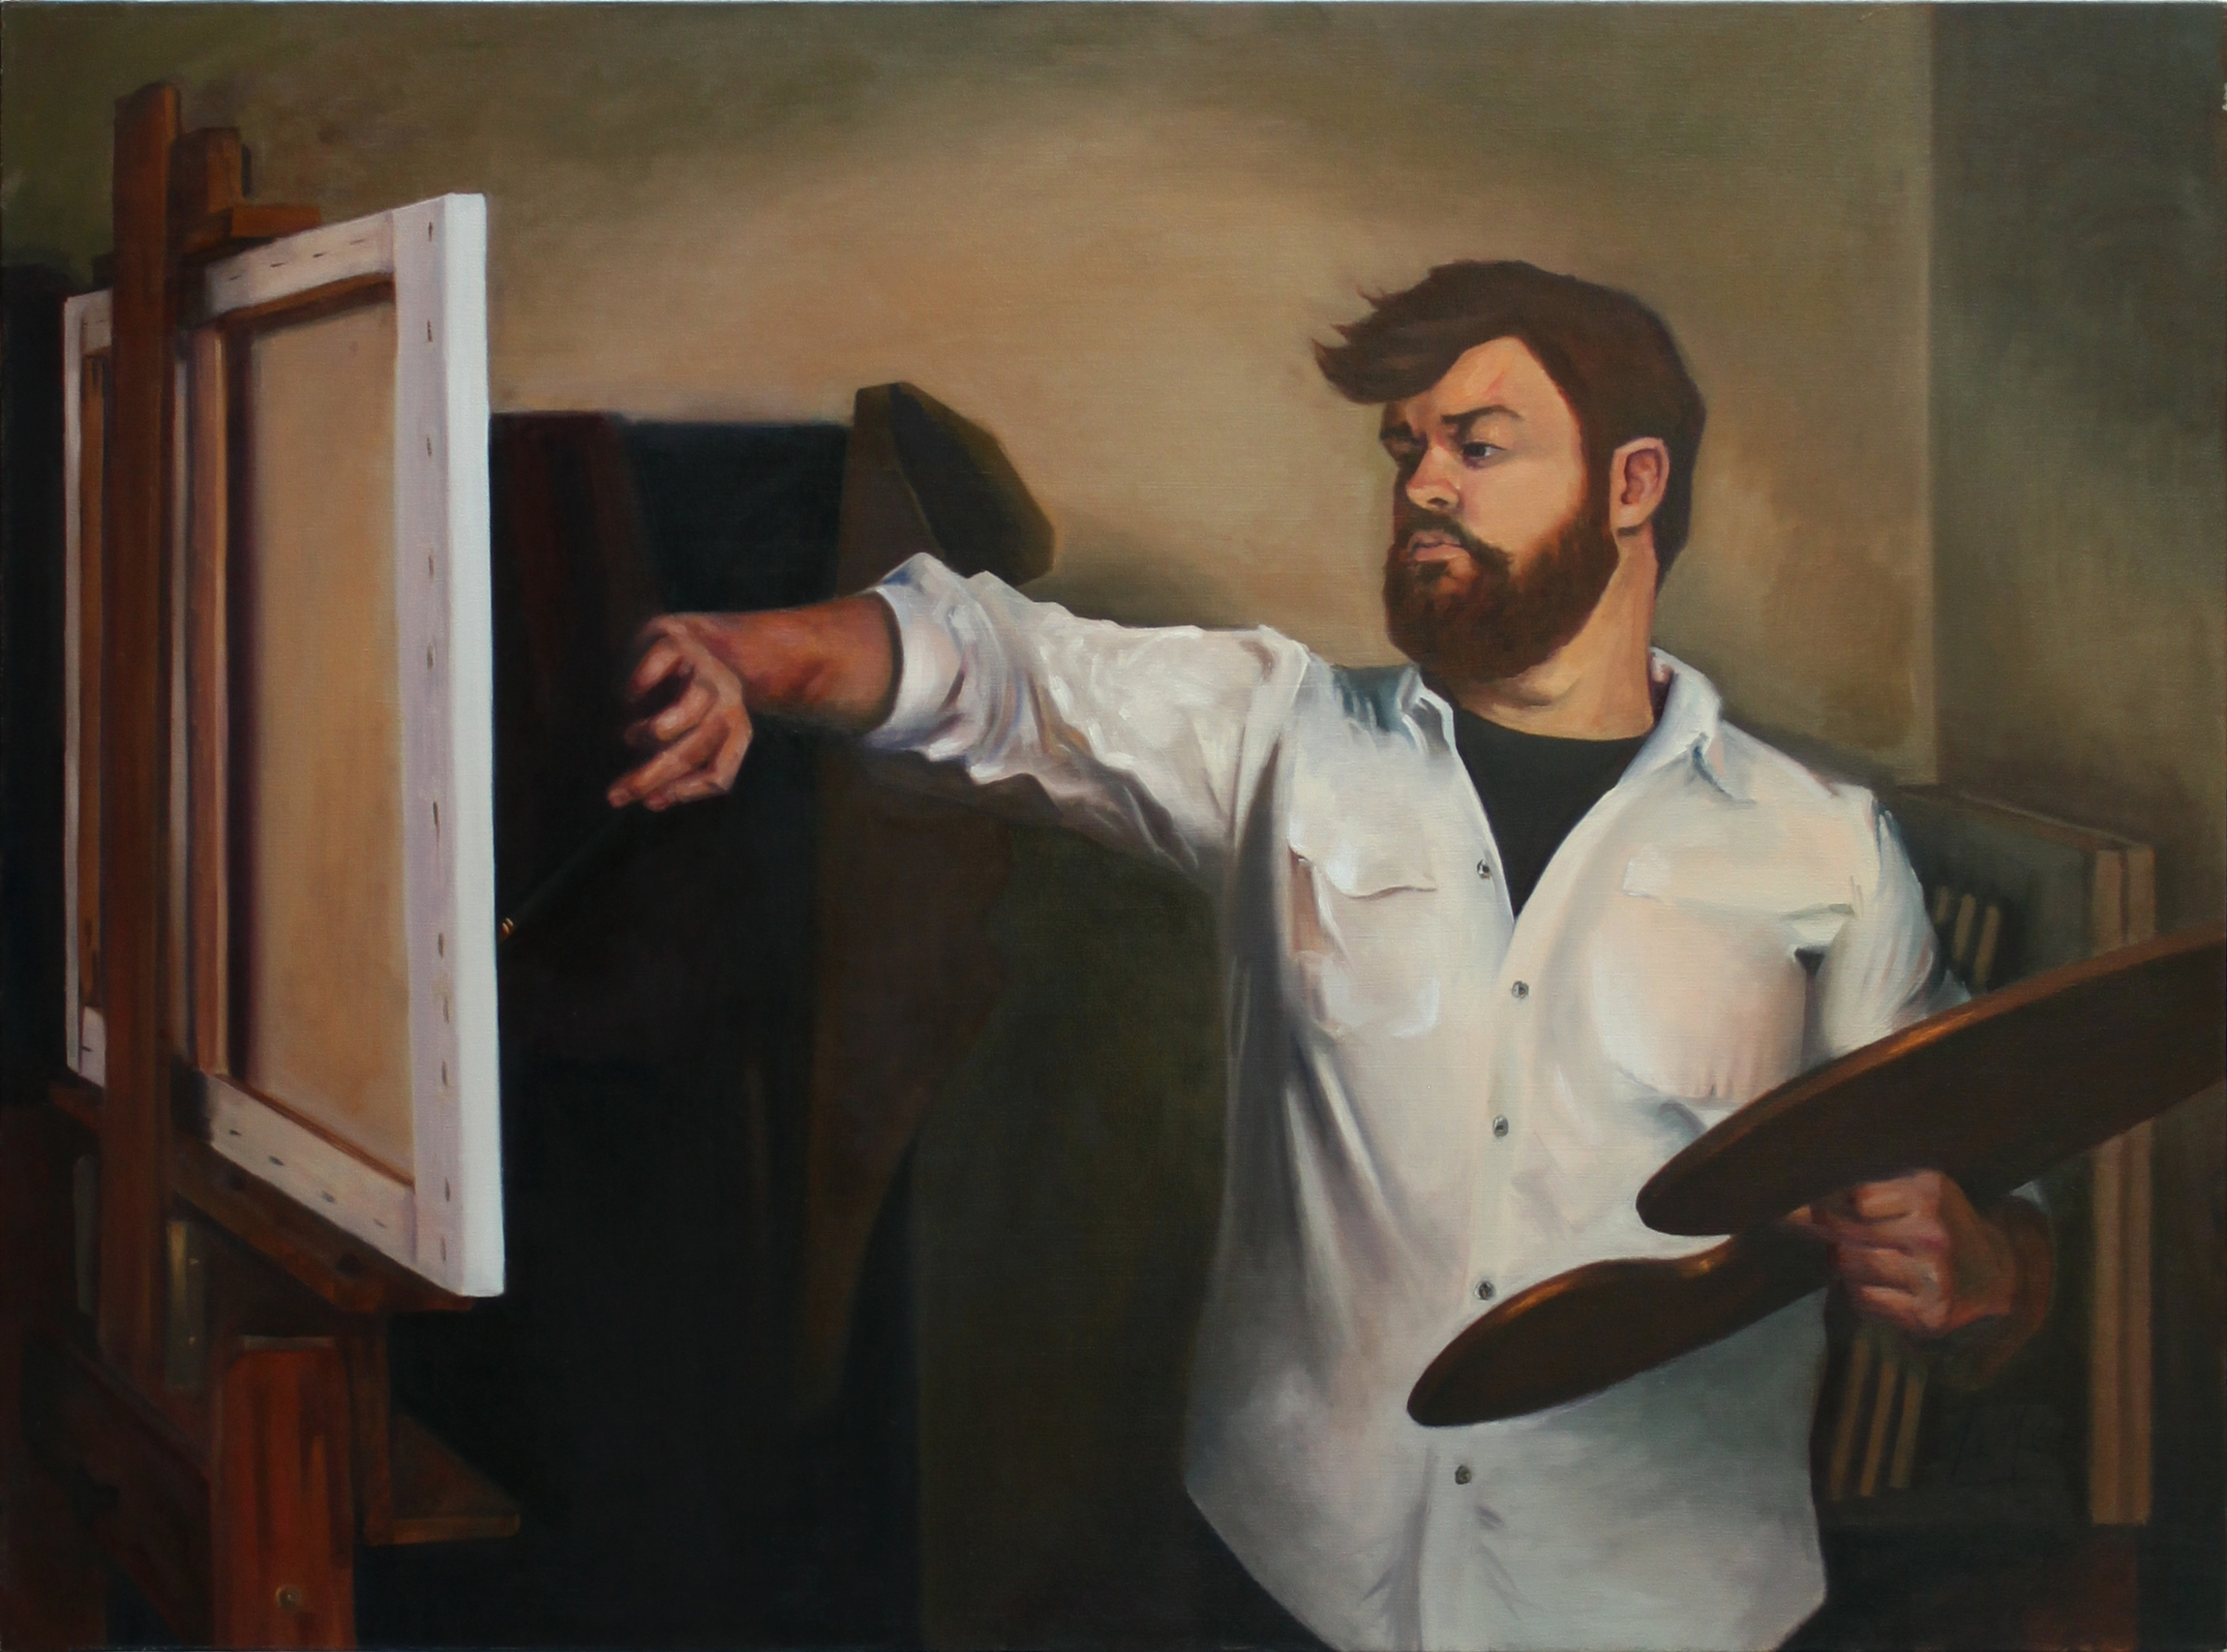 Self Portrait of Artist Painting, 2014, oil on canvas, 36 x 48 inches